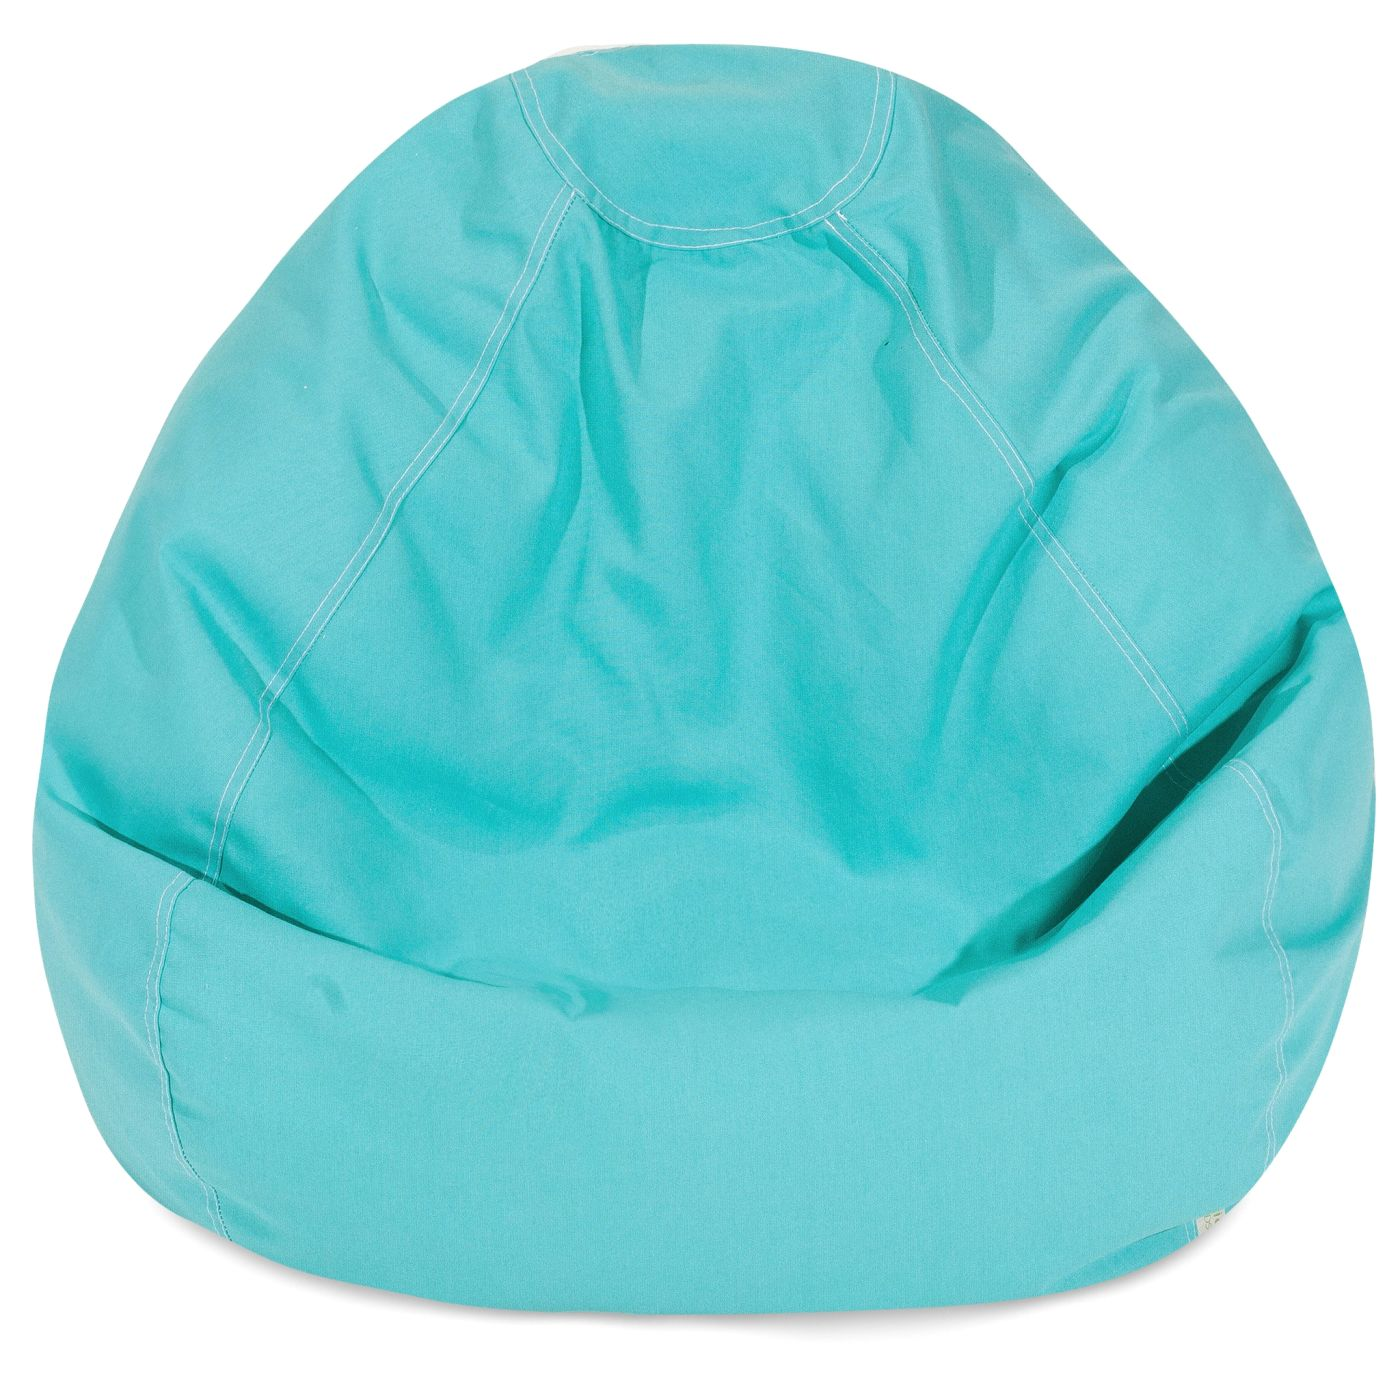 Teal small classic bean bag by majestic home 85907248035 for Small teal chair